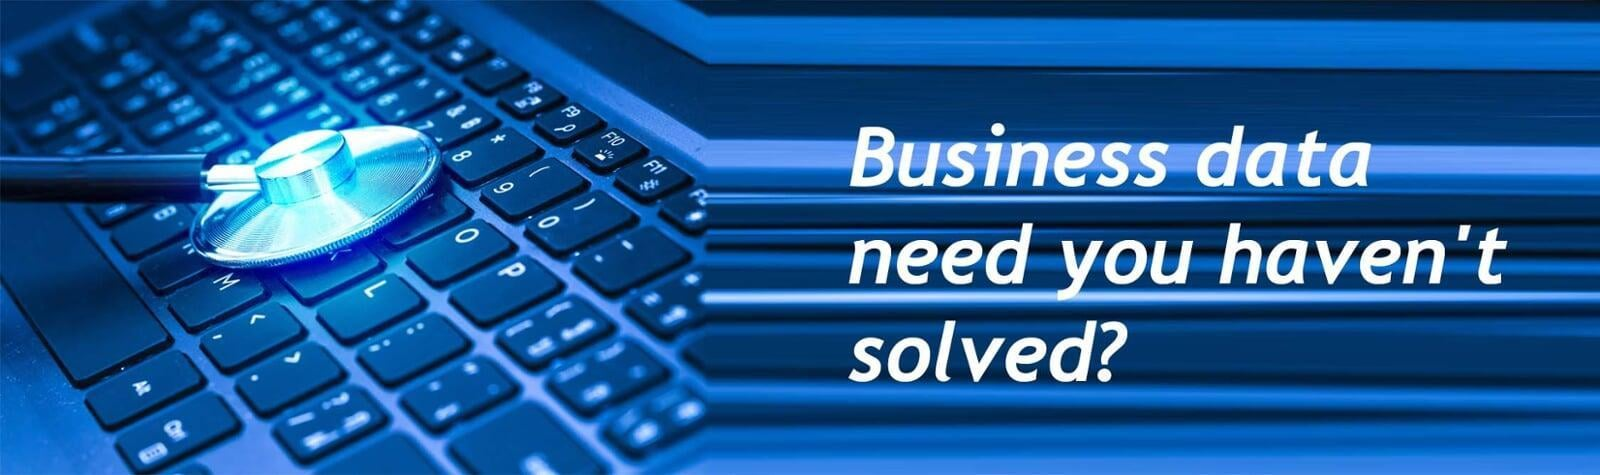 Business data need not solved